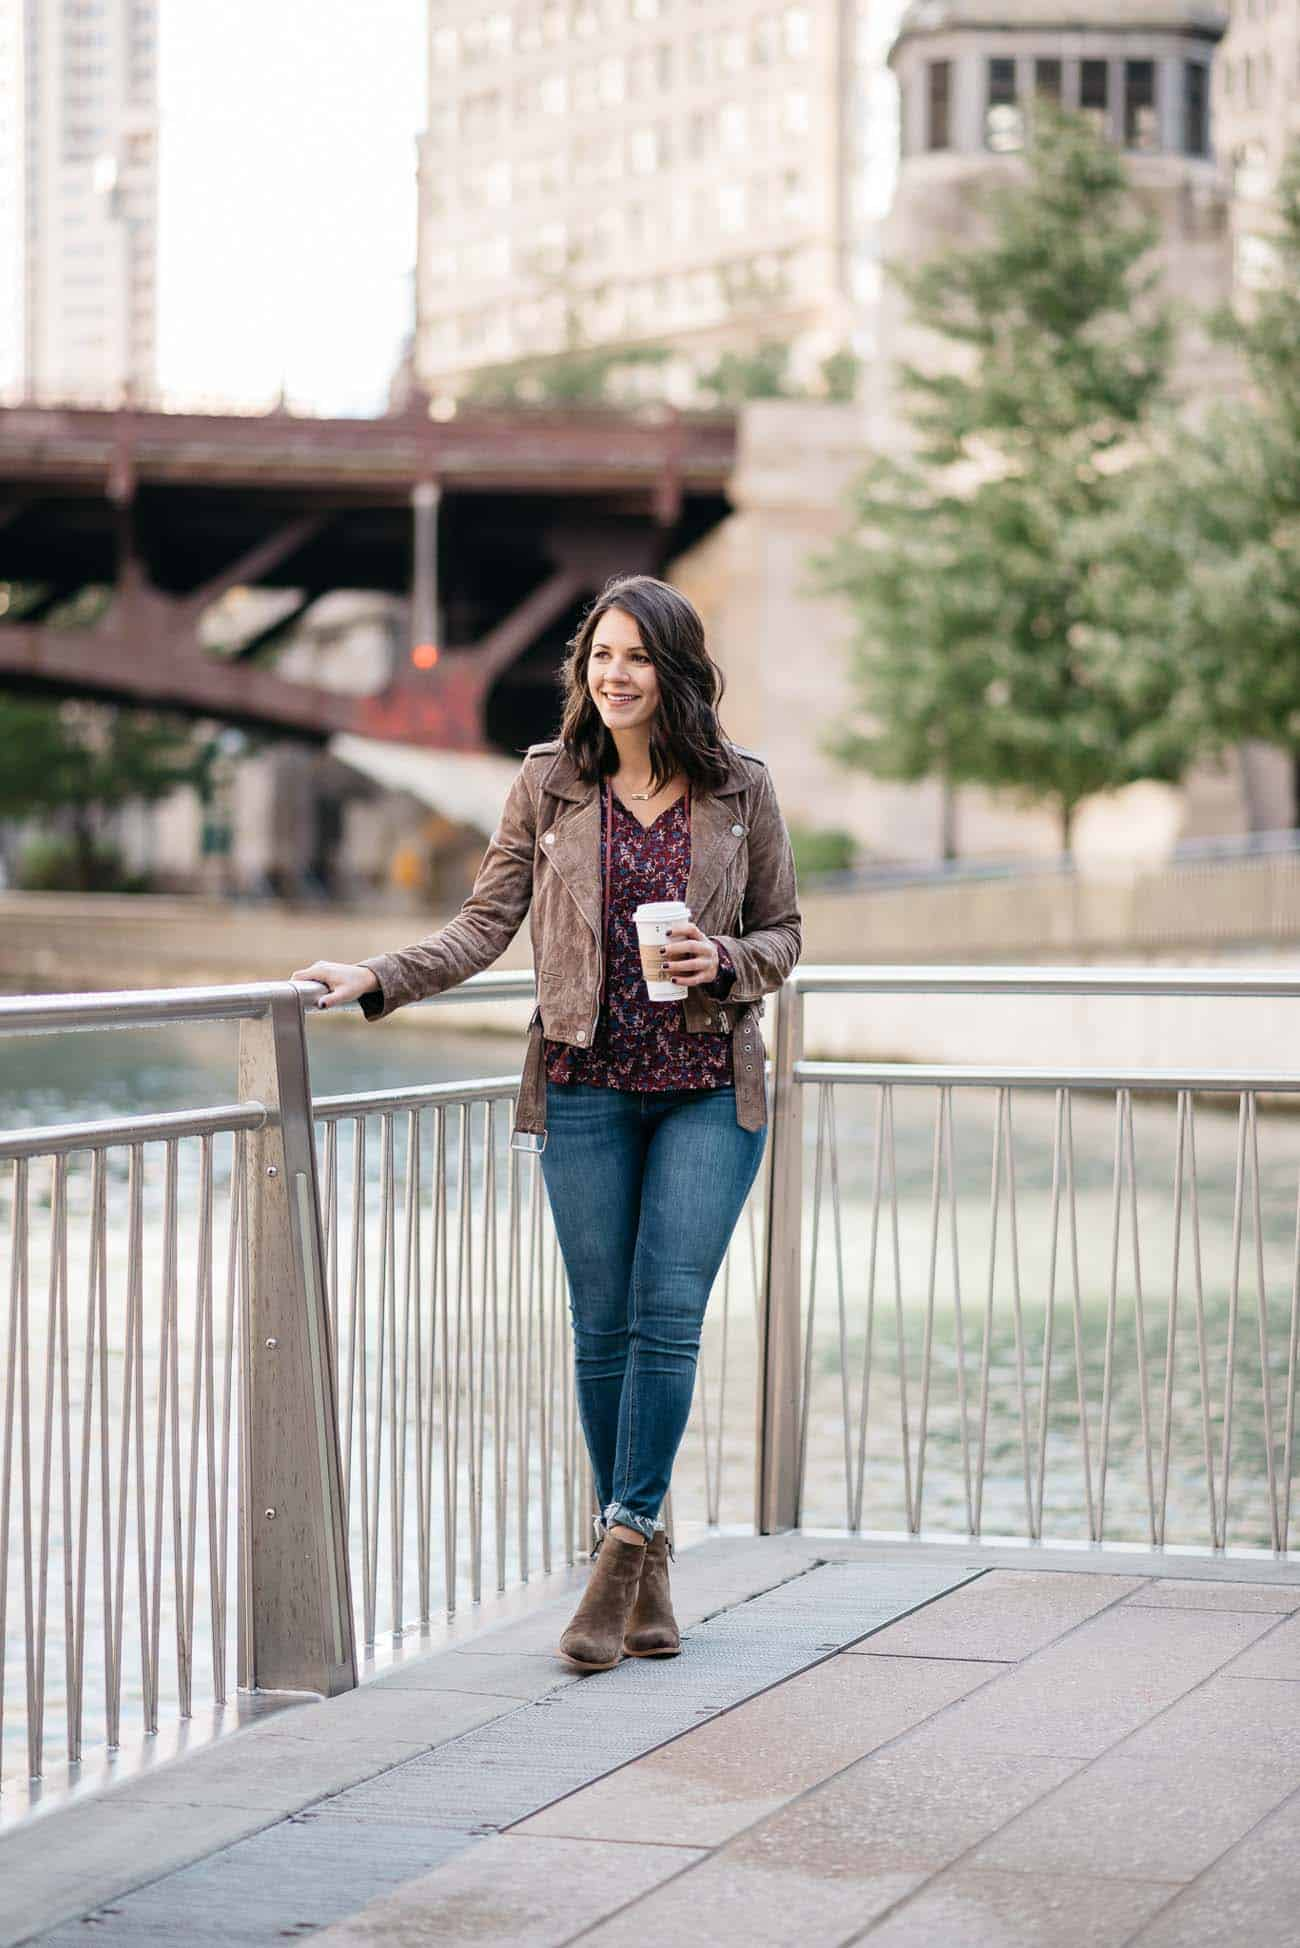 casual outfit ideas, suede moto jacket, jeans and booties, coffee, fall outfits, chicago riverwalk - My Style Vita @mystylevita